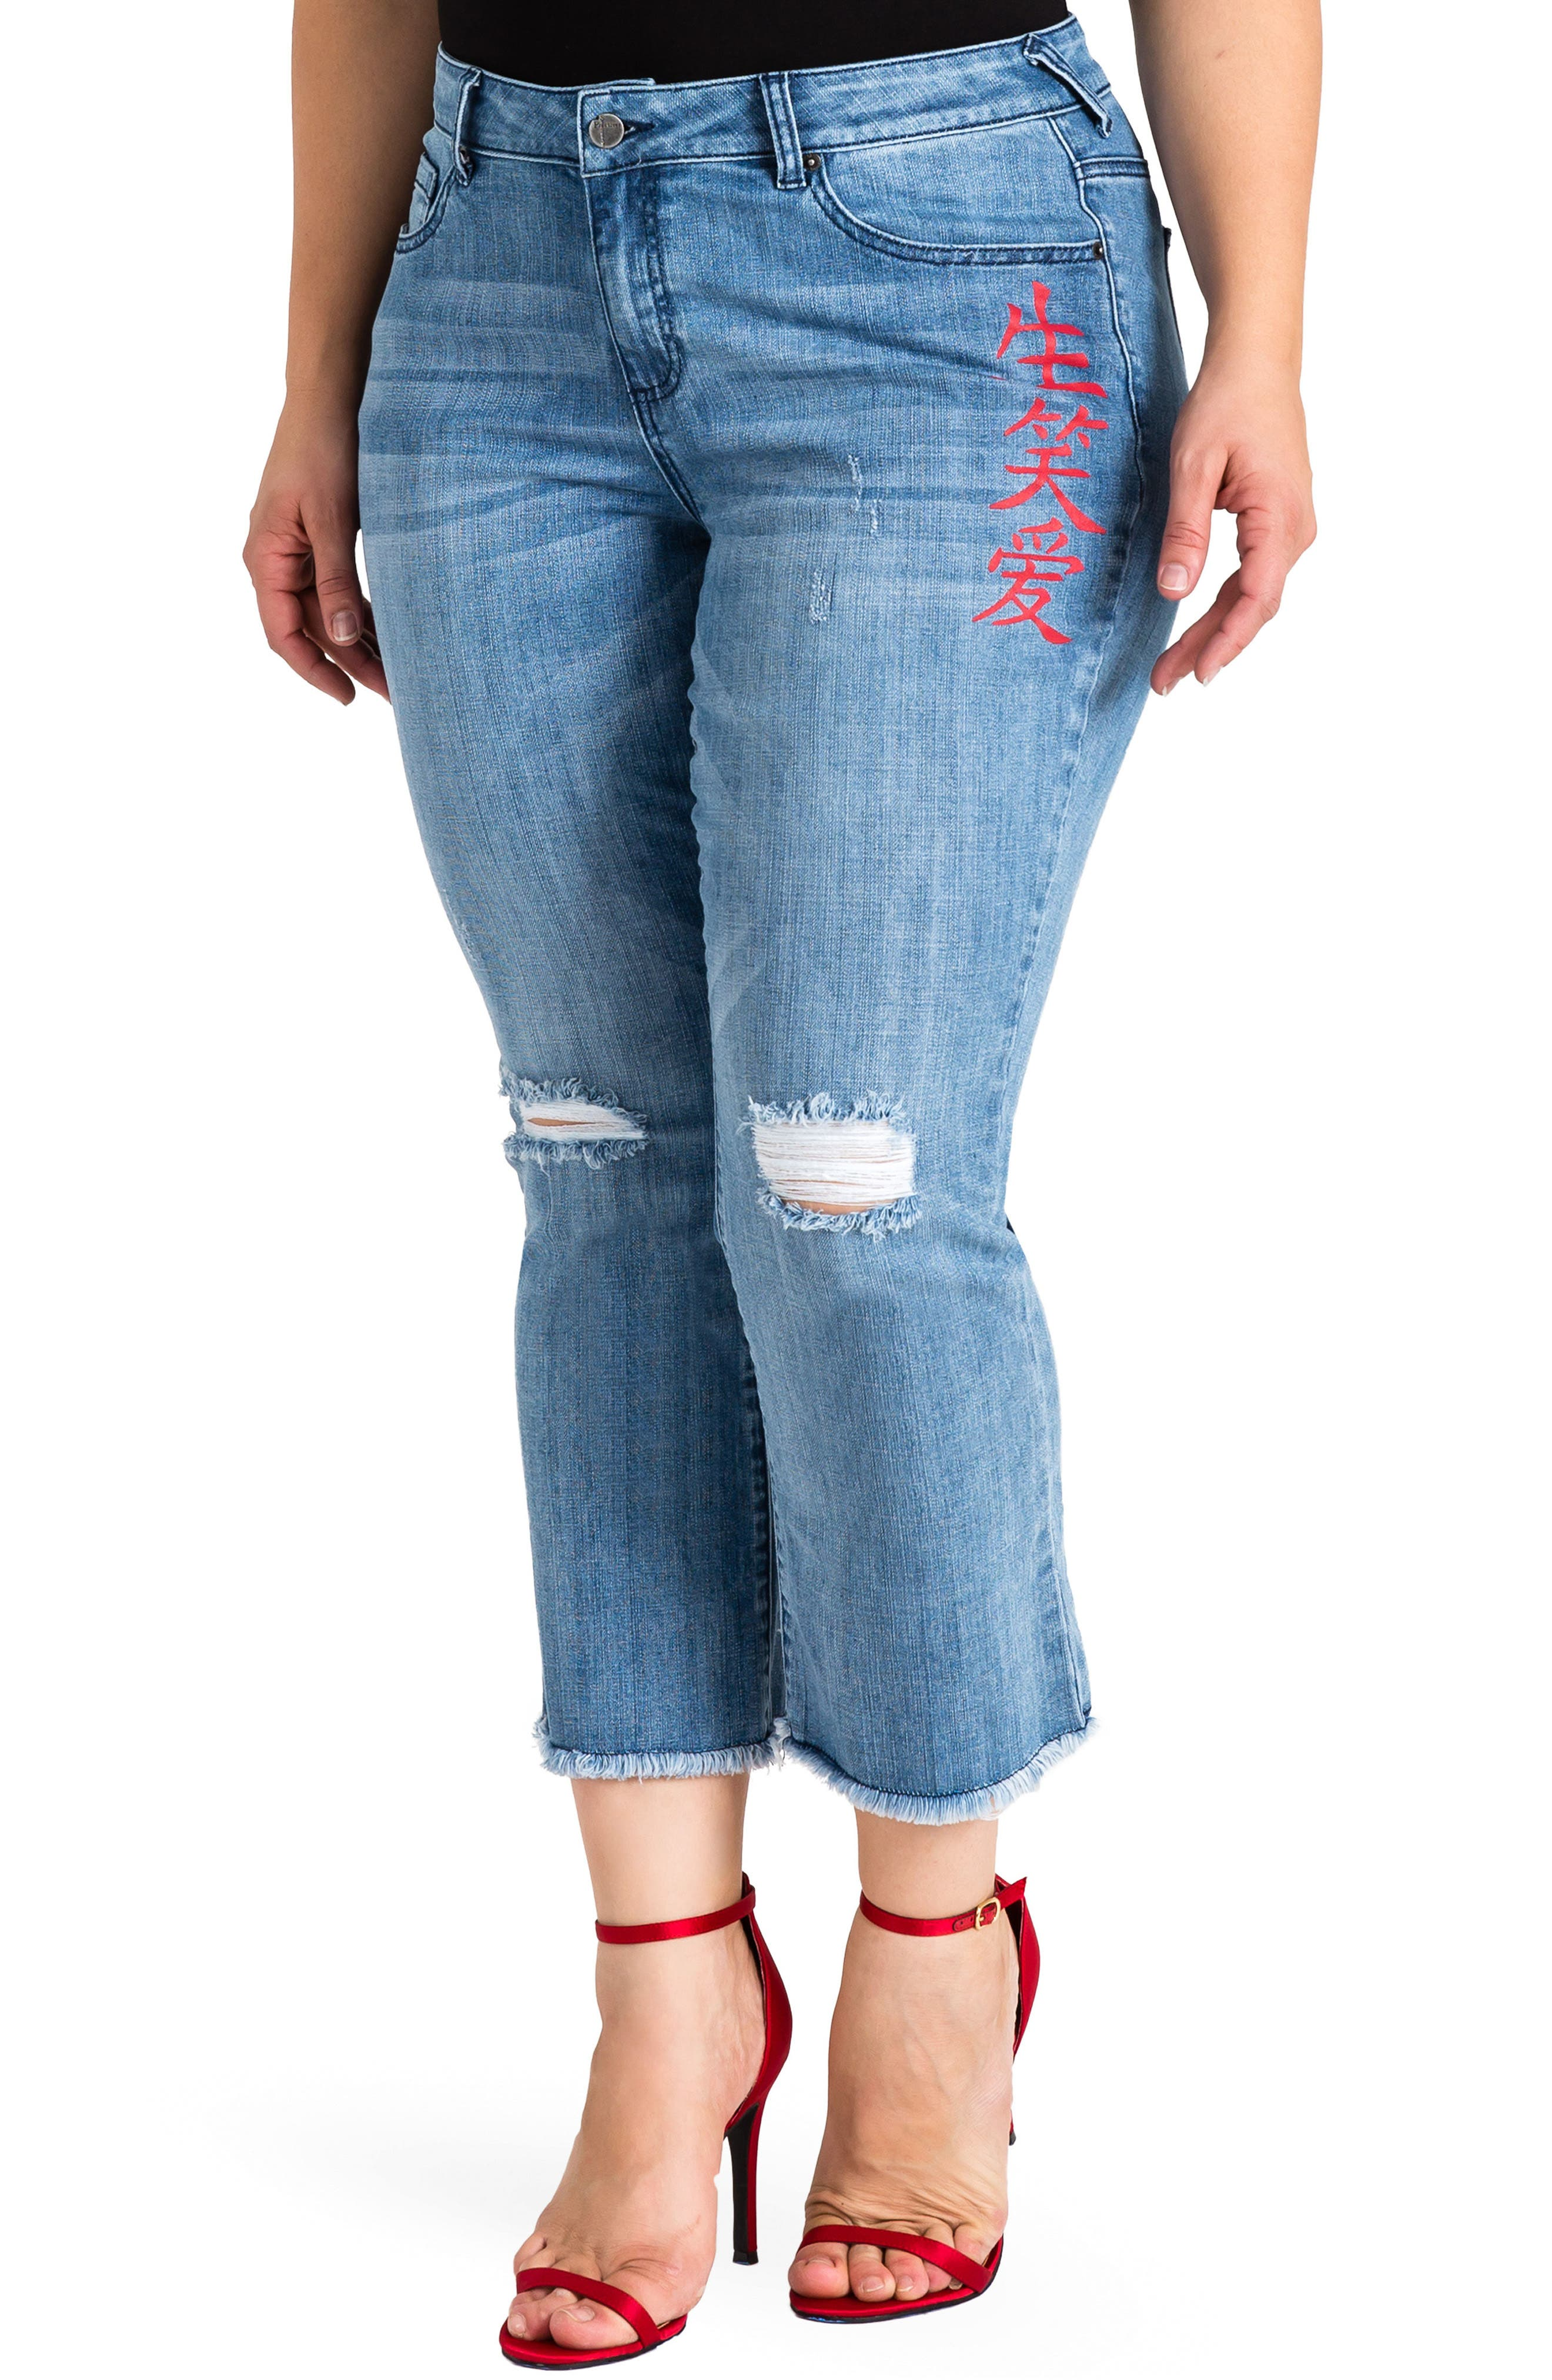 Image of Standards & Practices Chinese Character Distressed Crop Flare Jeans